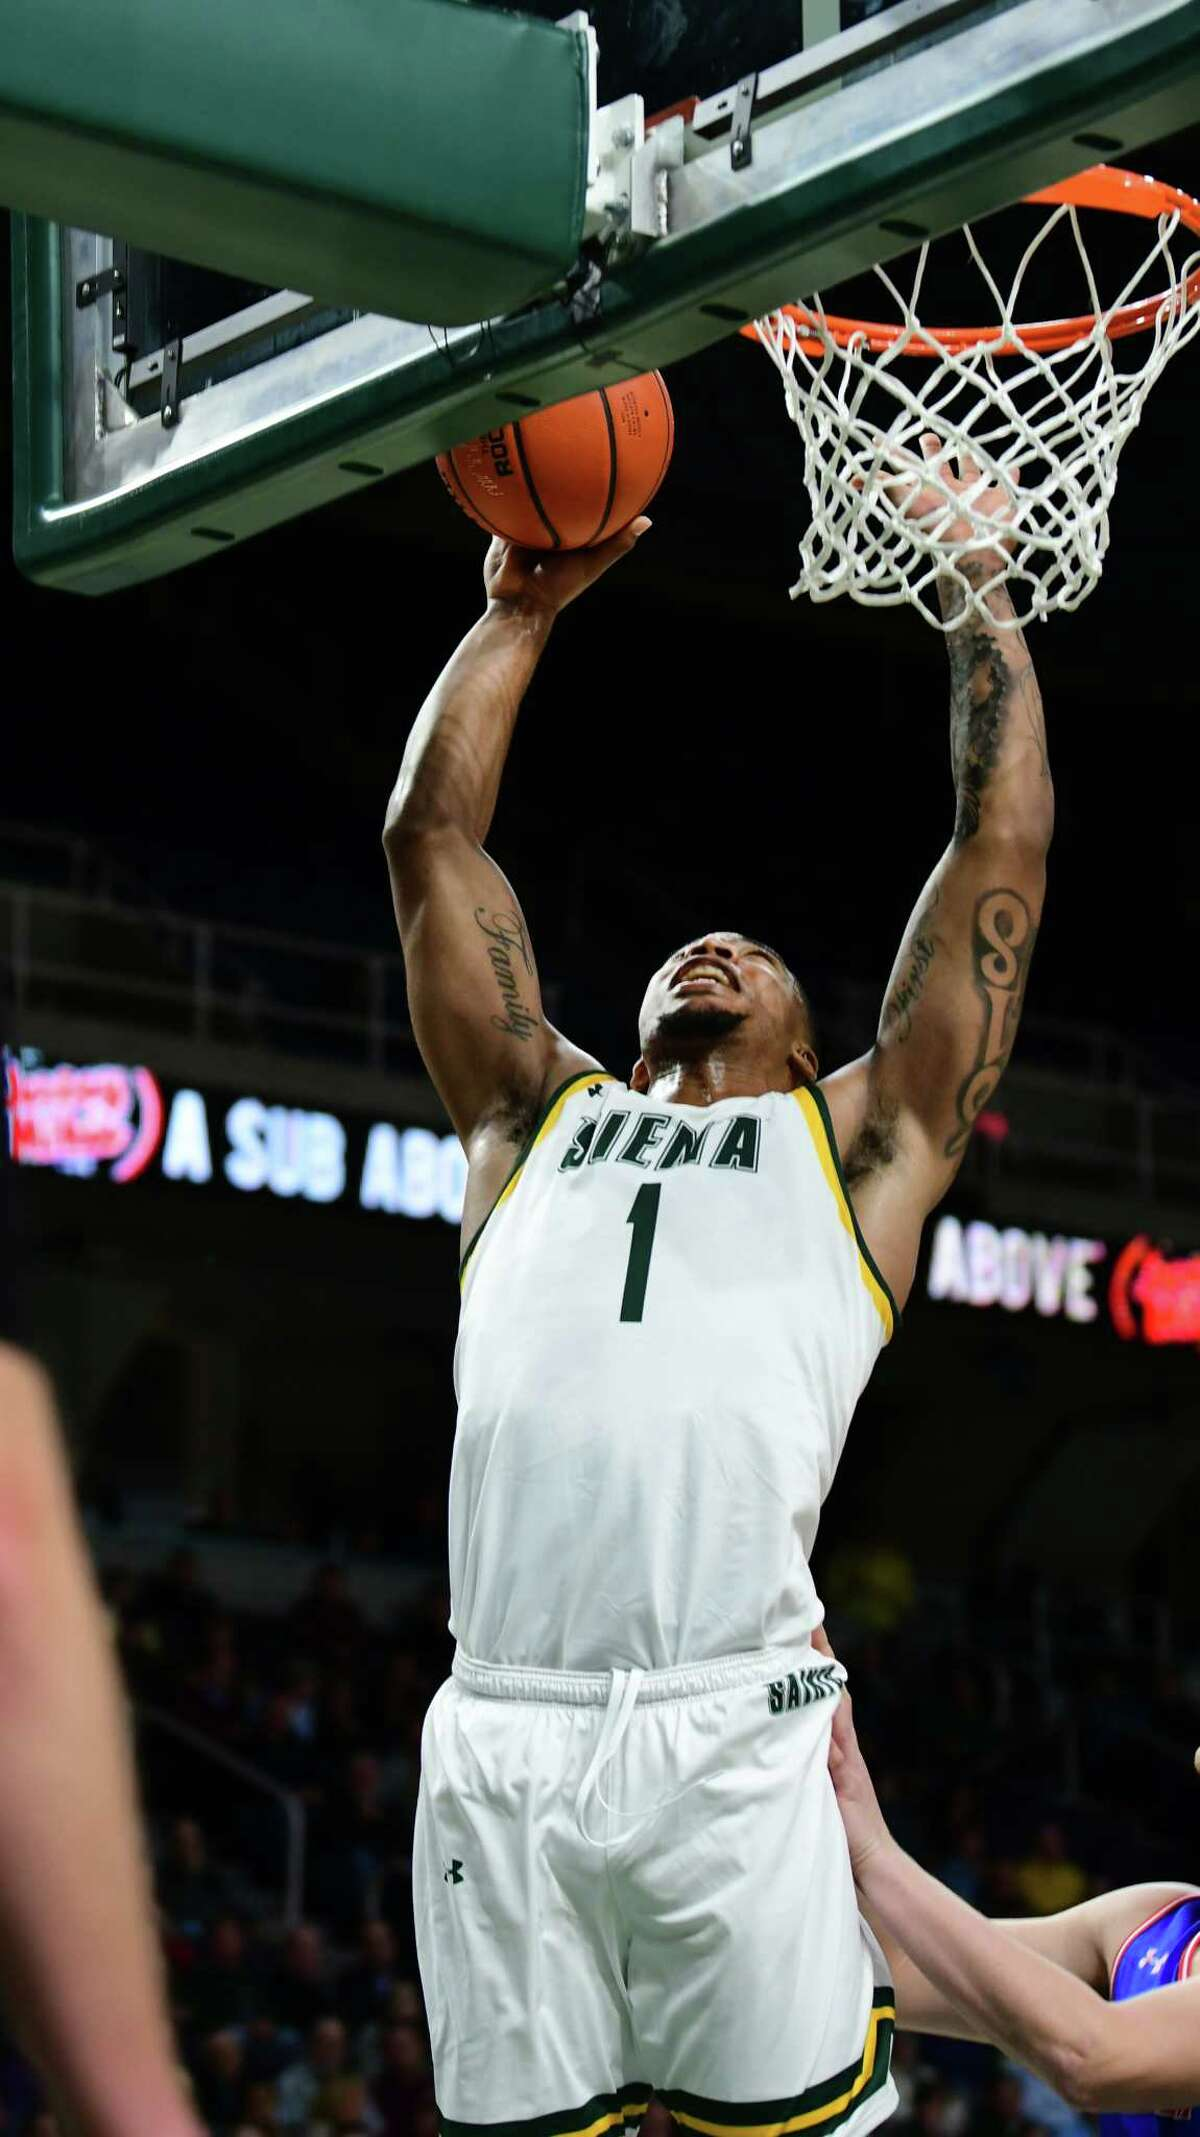 Siena's Elijah Burns takes a shot during a basketball game against American University at the Times Union Center on Tuesday, Nov. 5, 2019 in Albany, N.Y. (Lori Van Buren/Times Union)